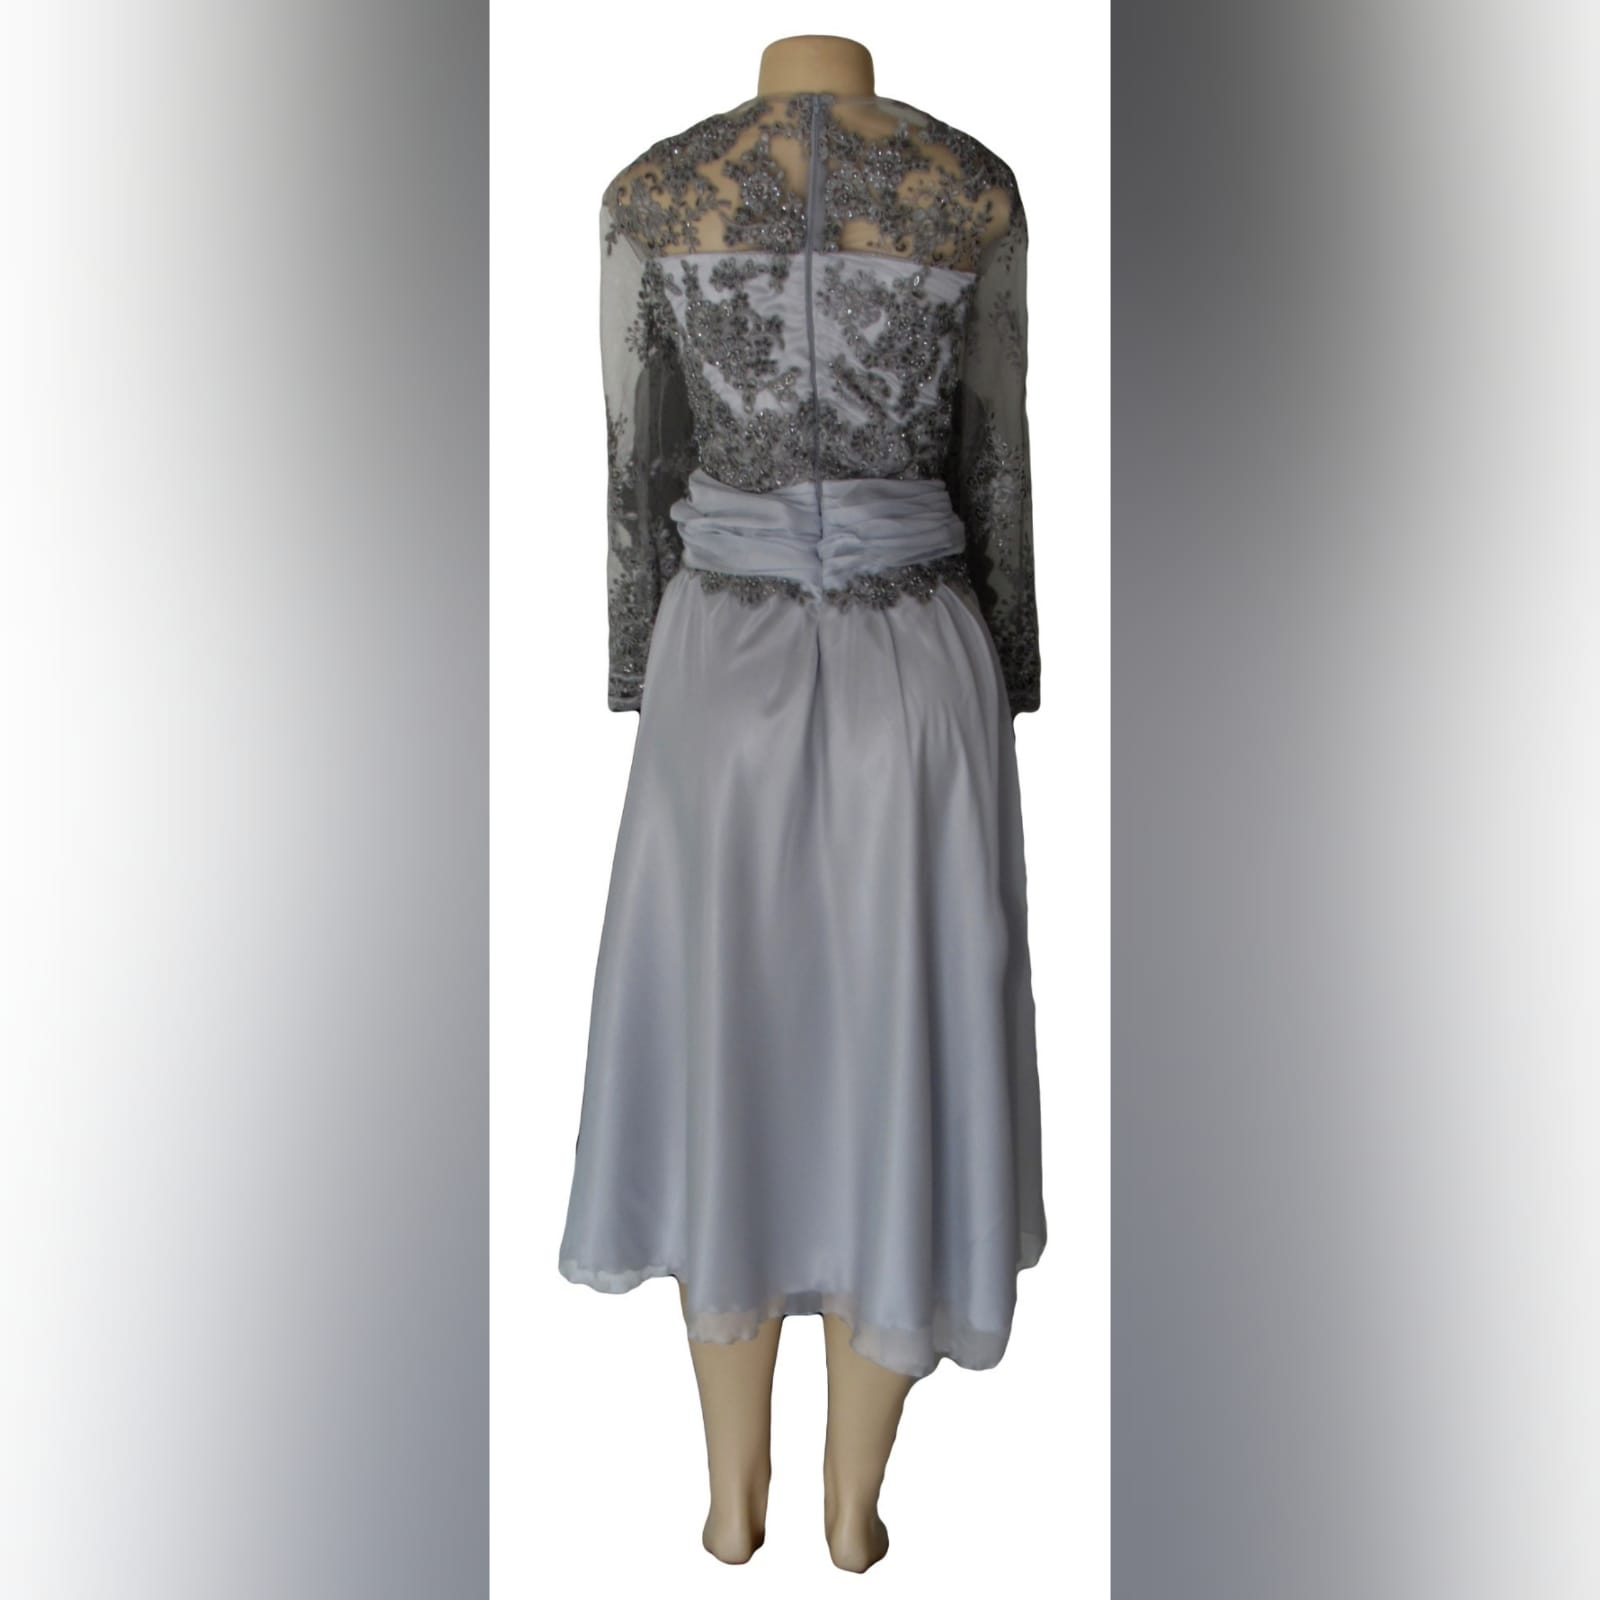 Grey knee length mother of the bride dress 5 grey knee length mother of the bride dress detailed with a ruched belt and lace on the bodice and sleeves.